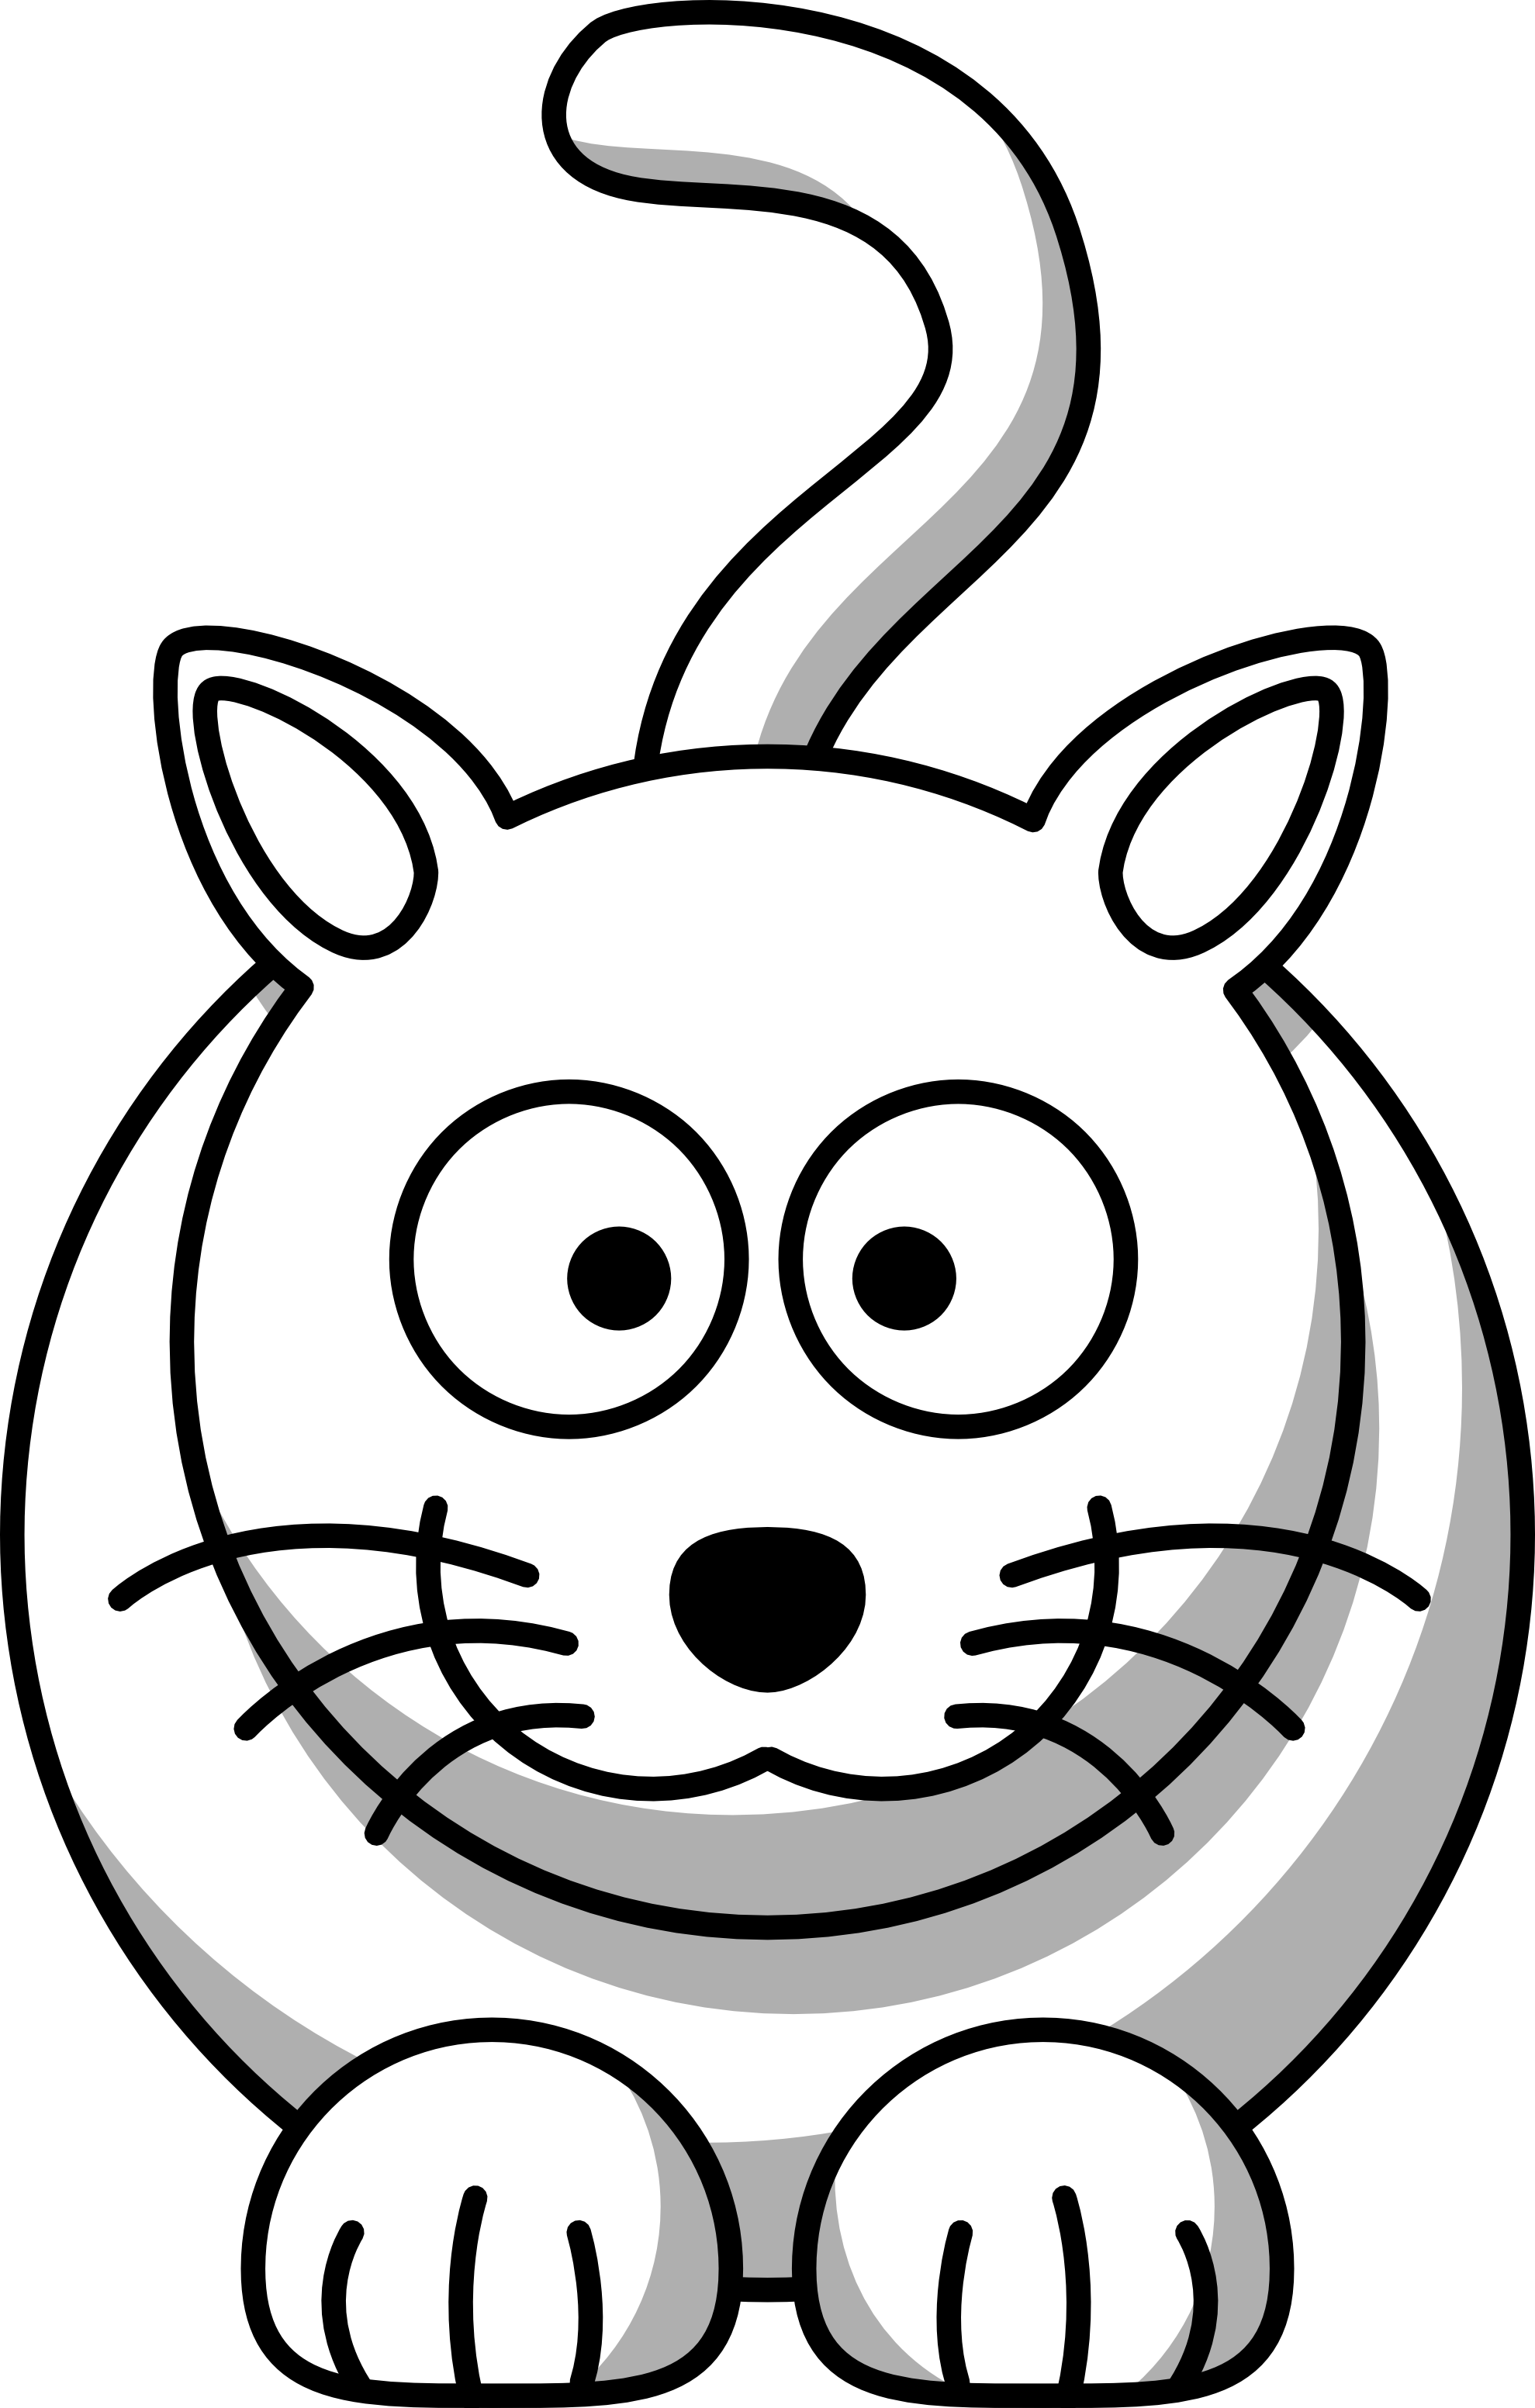 Lemmling Cartoon Cat Scalable Vector Graphics Svg Black White Line Art